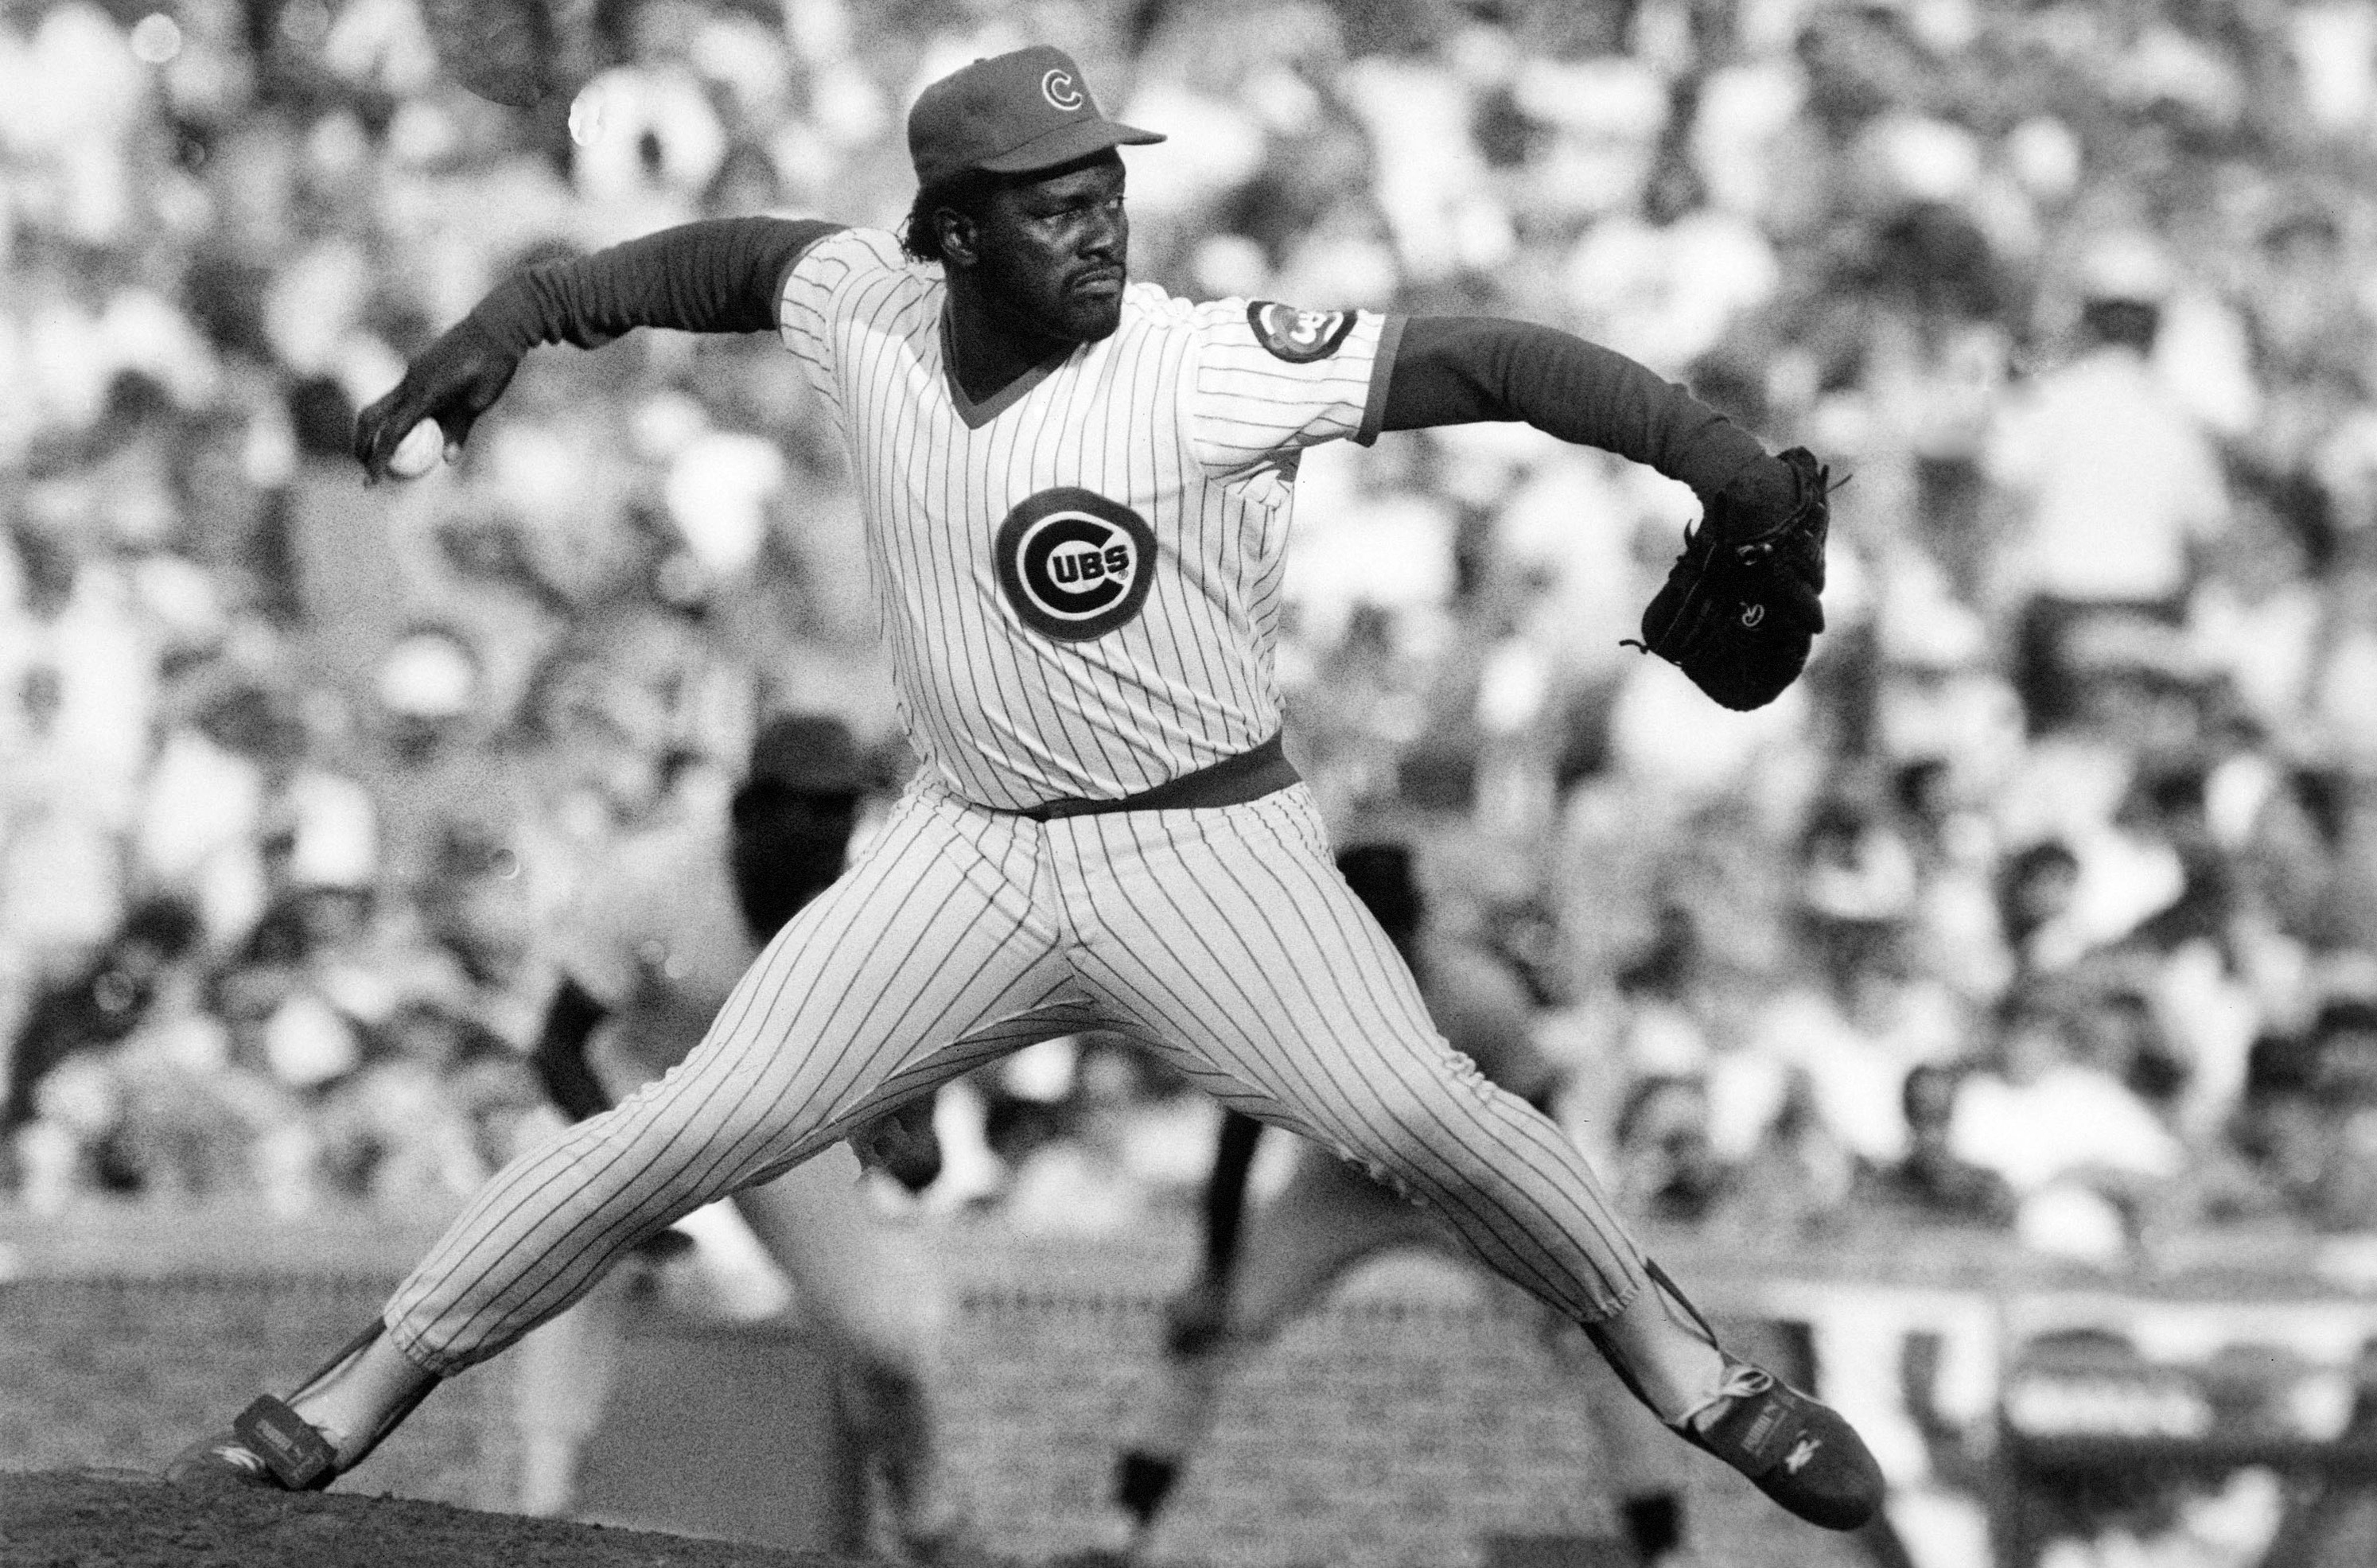 Windy City Wins: Lee Smith, Baines elected to baseball Hall